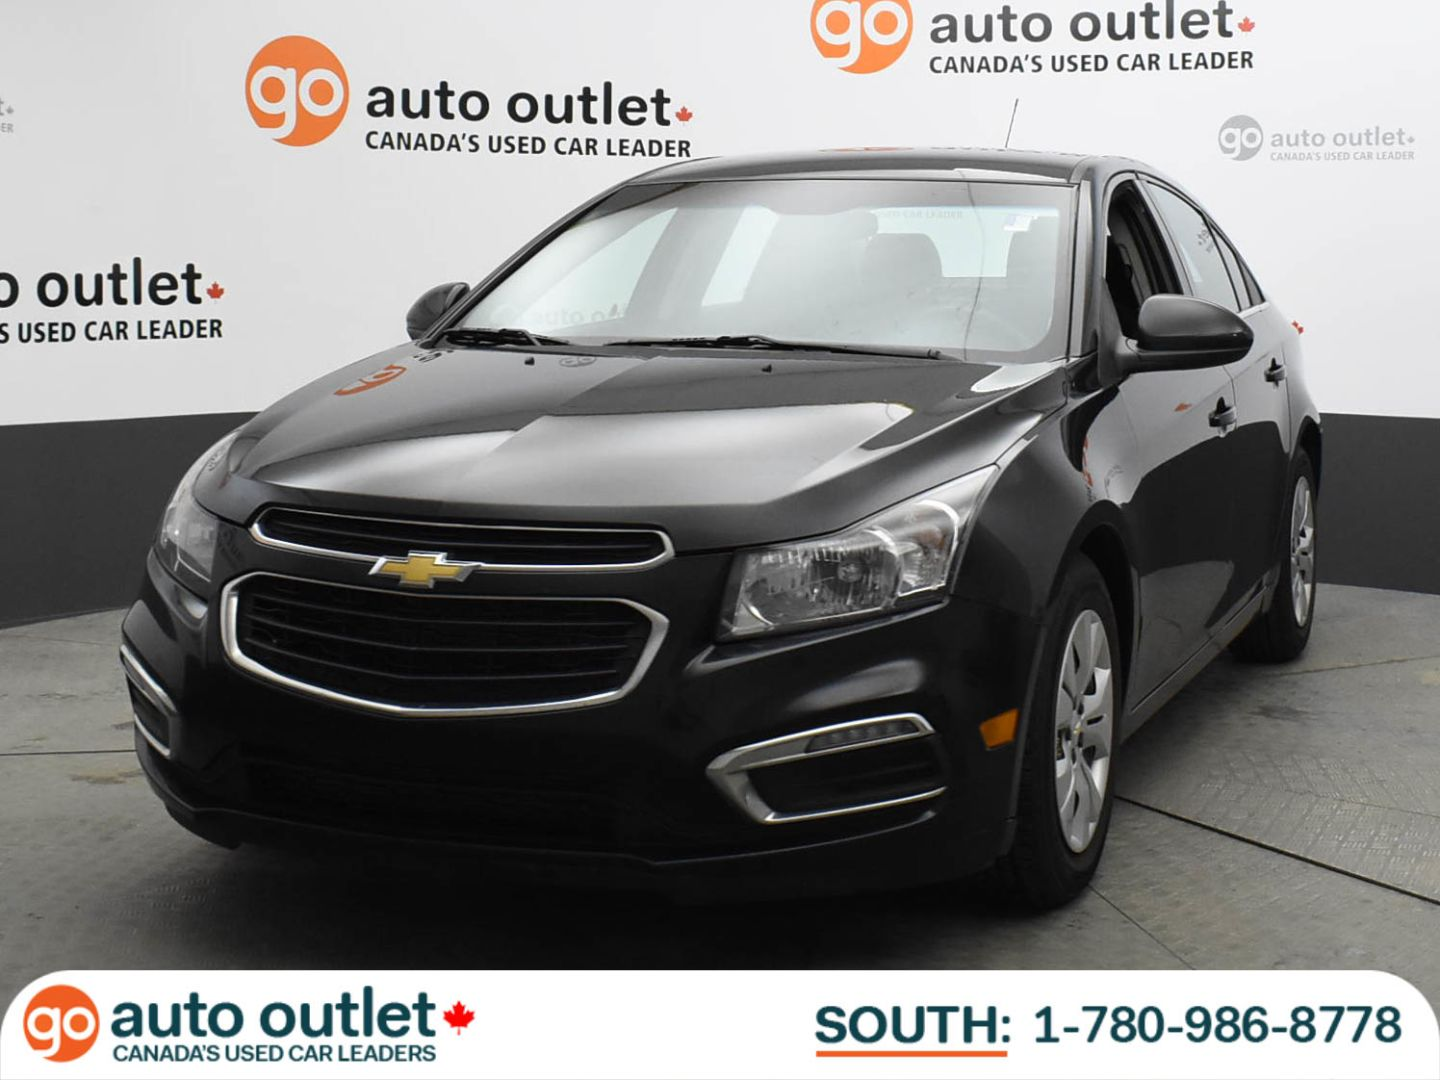 2015 Chevrolet Cruze 1LT for sale in Leduc, Alberta